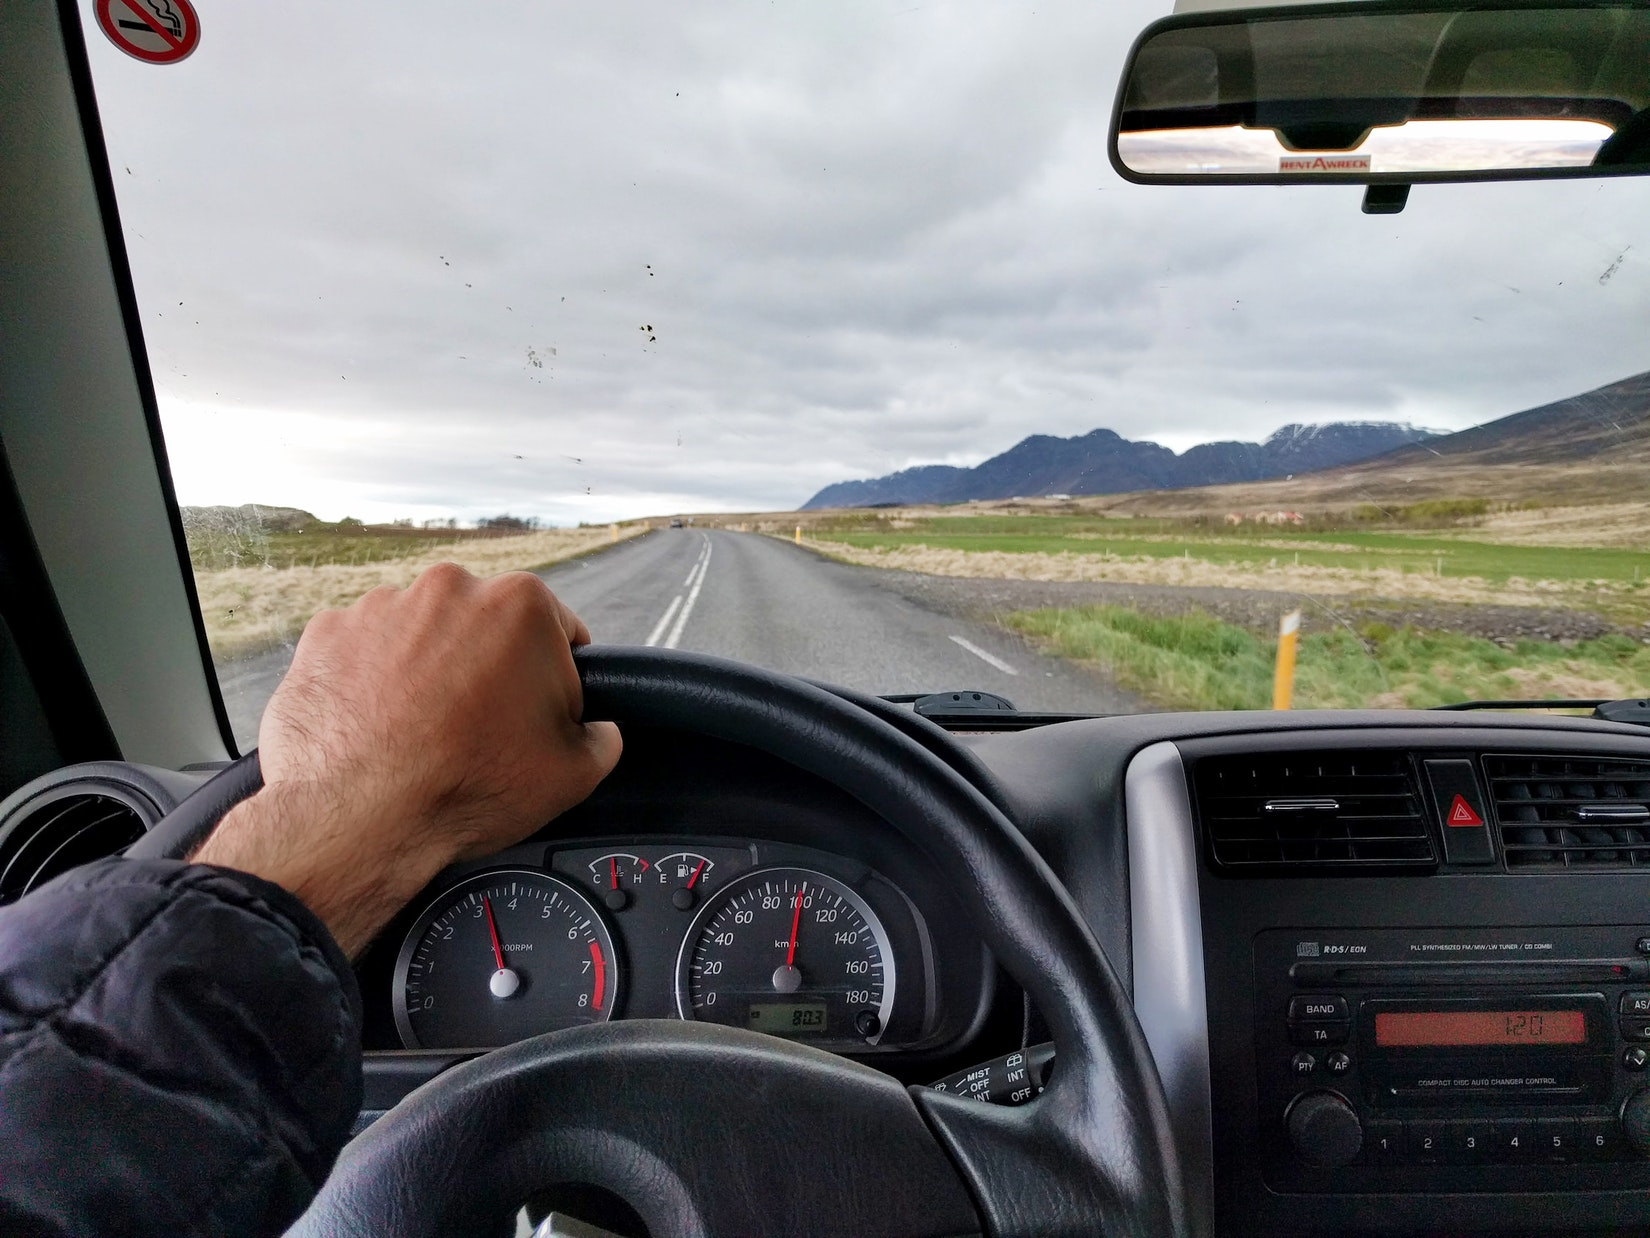 Taking a picture while driving in Iceland